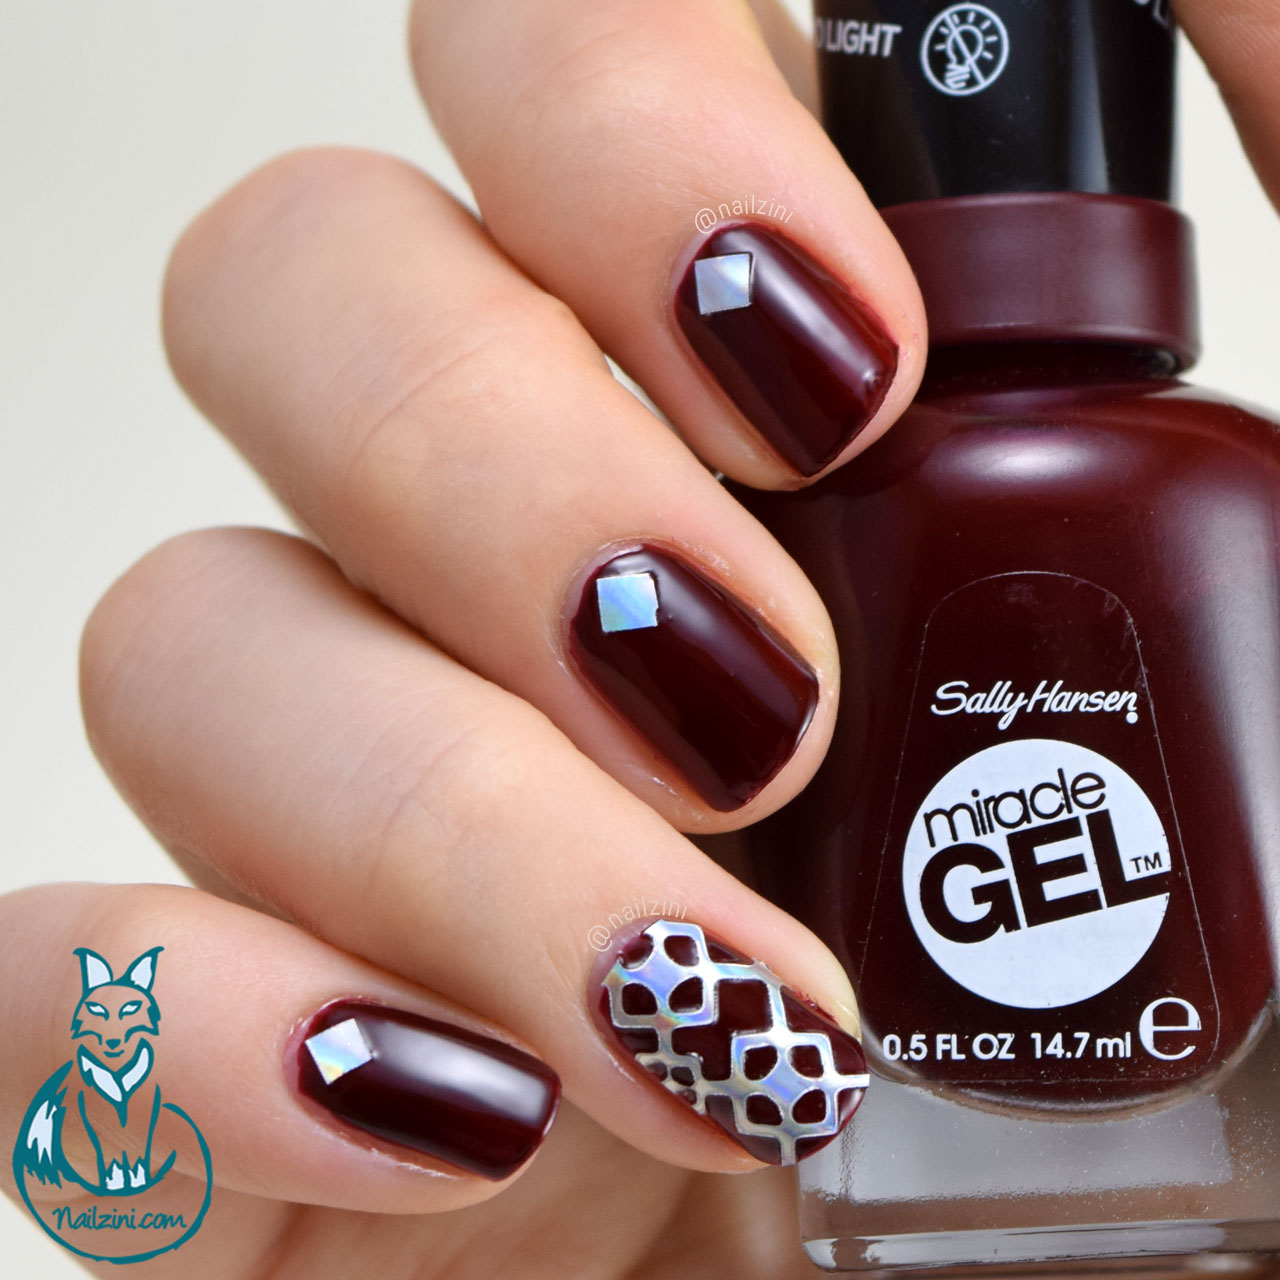 sally hansen miracle gel instructions